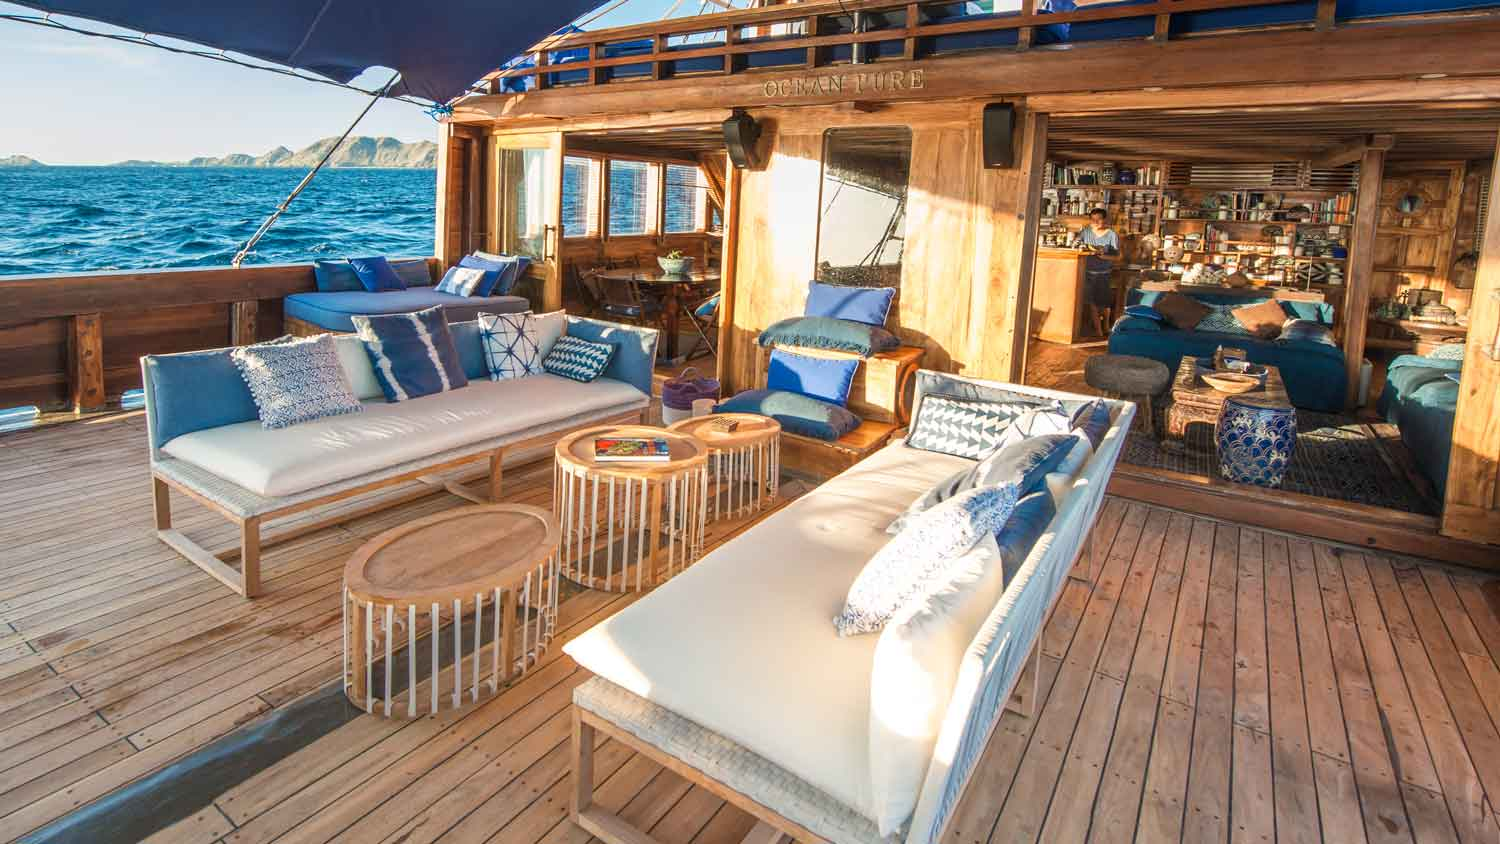 Ocean Pure's main deck lounge